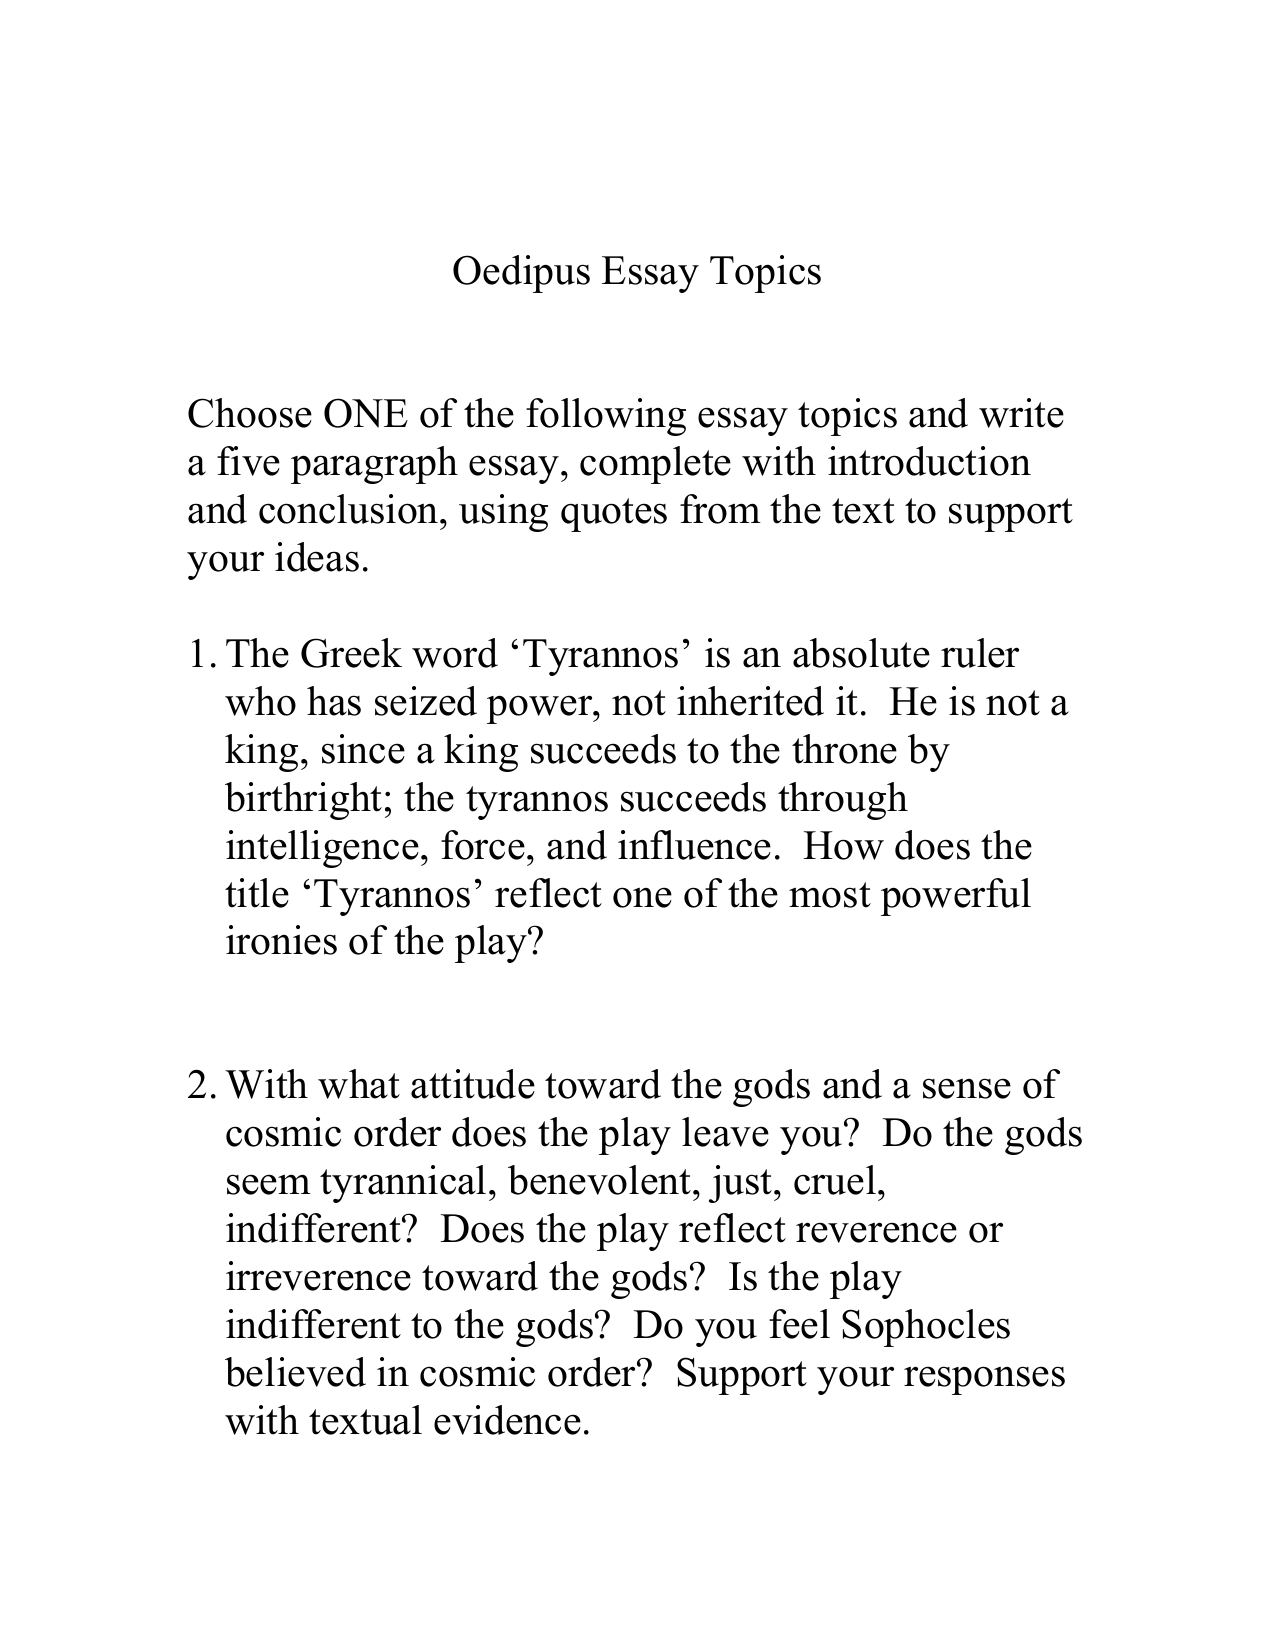 013 Essay Example 010776288 1 Paragraph Best 5 Topics 7th Grade For Elementary Students Five List Full